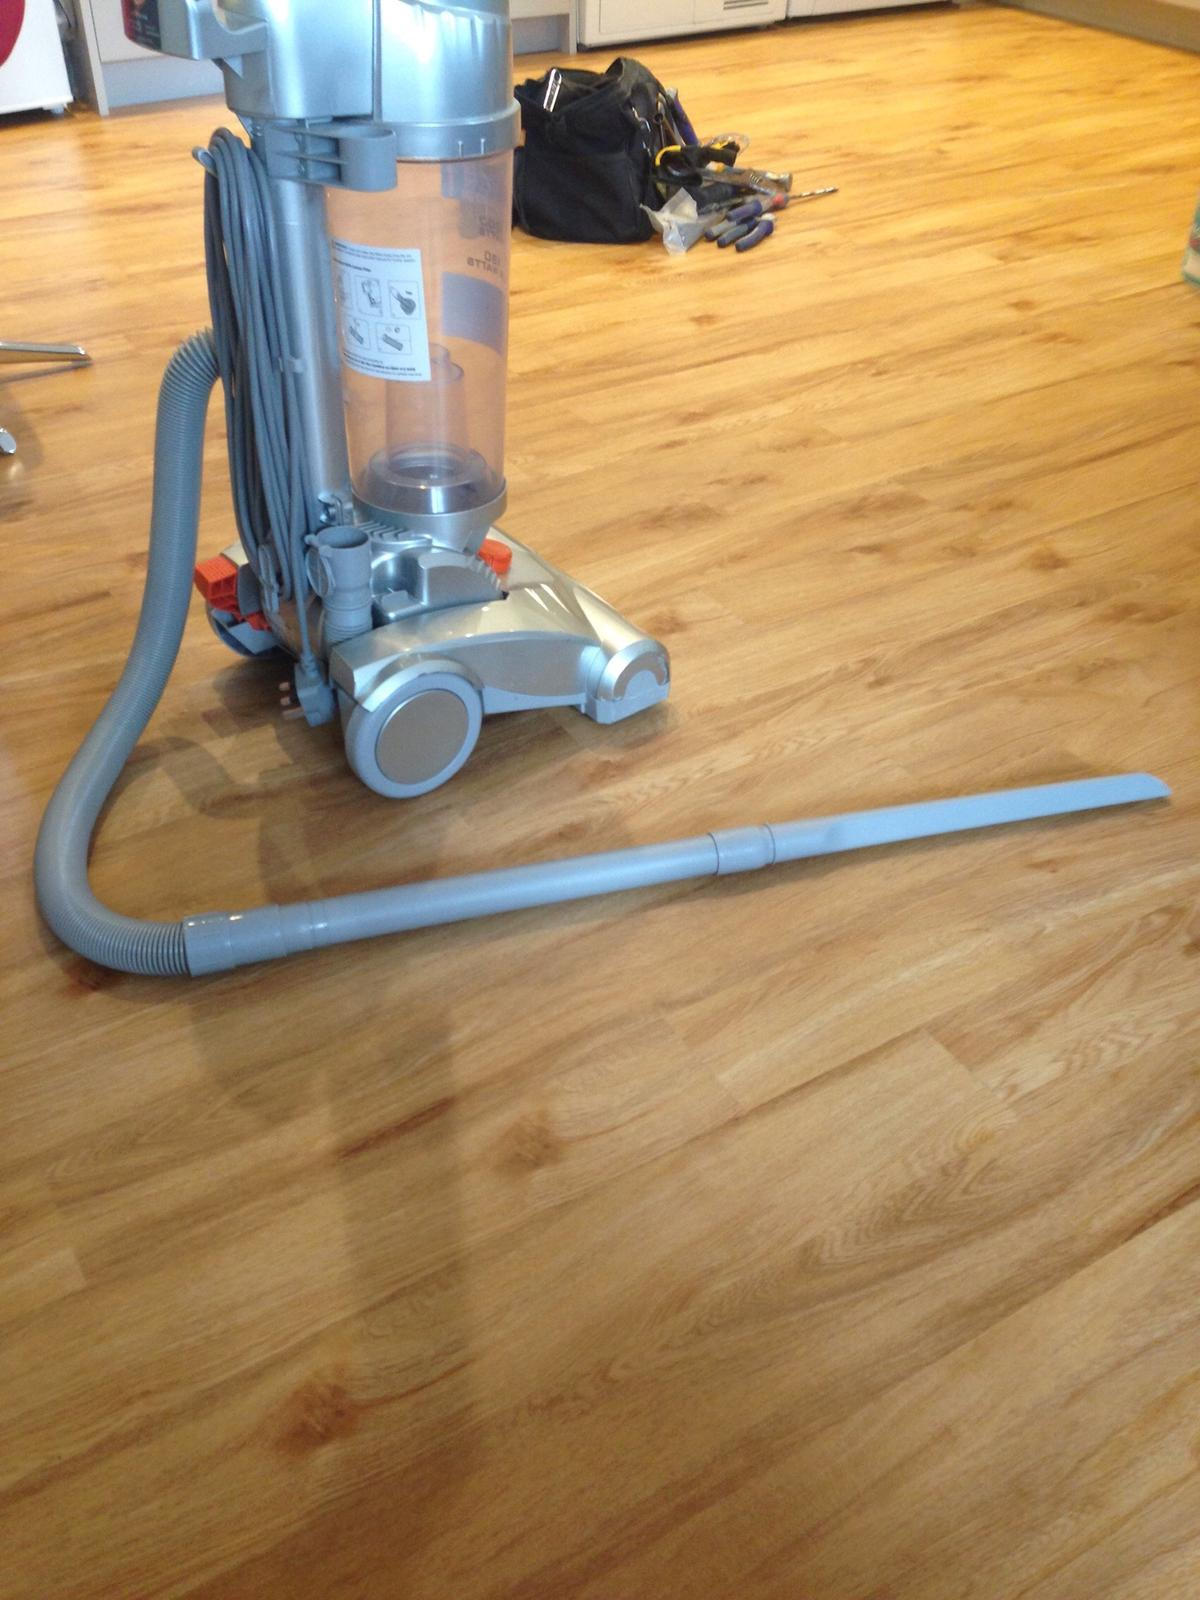 Vax Power 1 Upright Vacuum cleaner in BN11 Worthing for